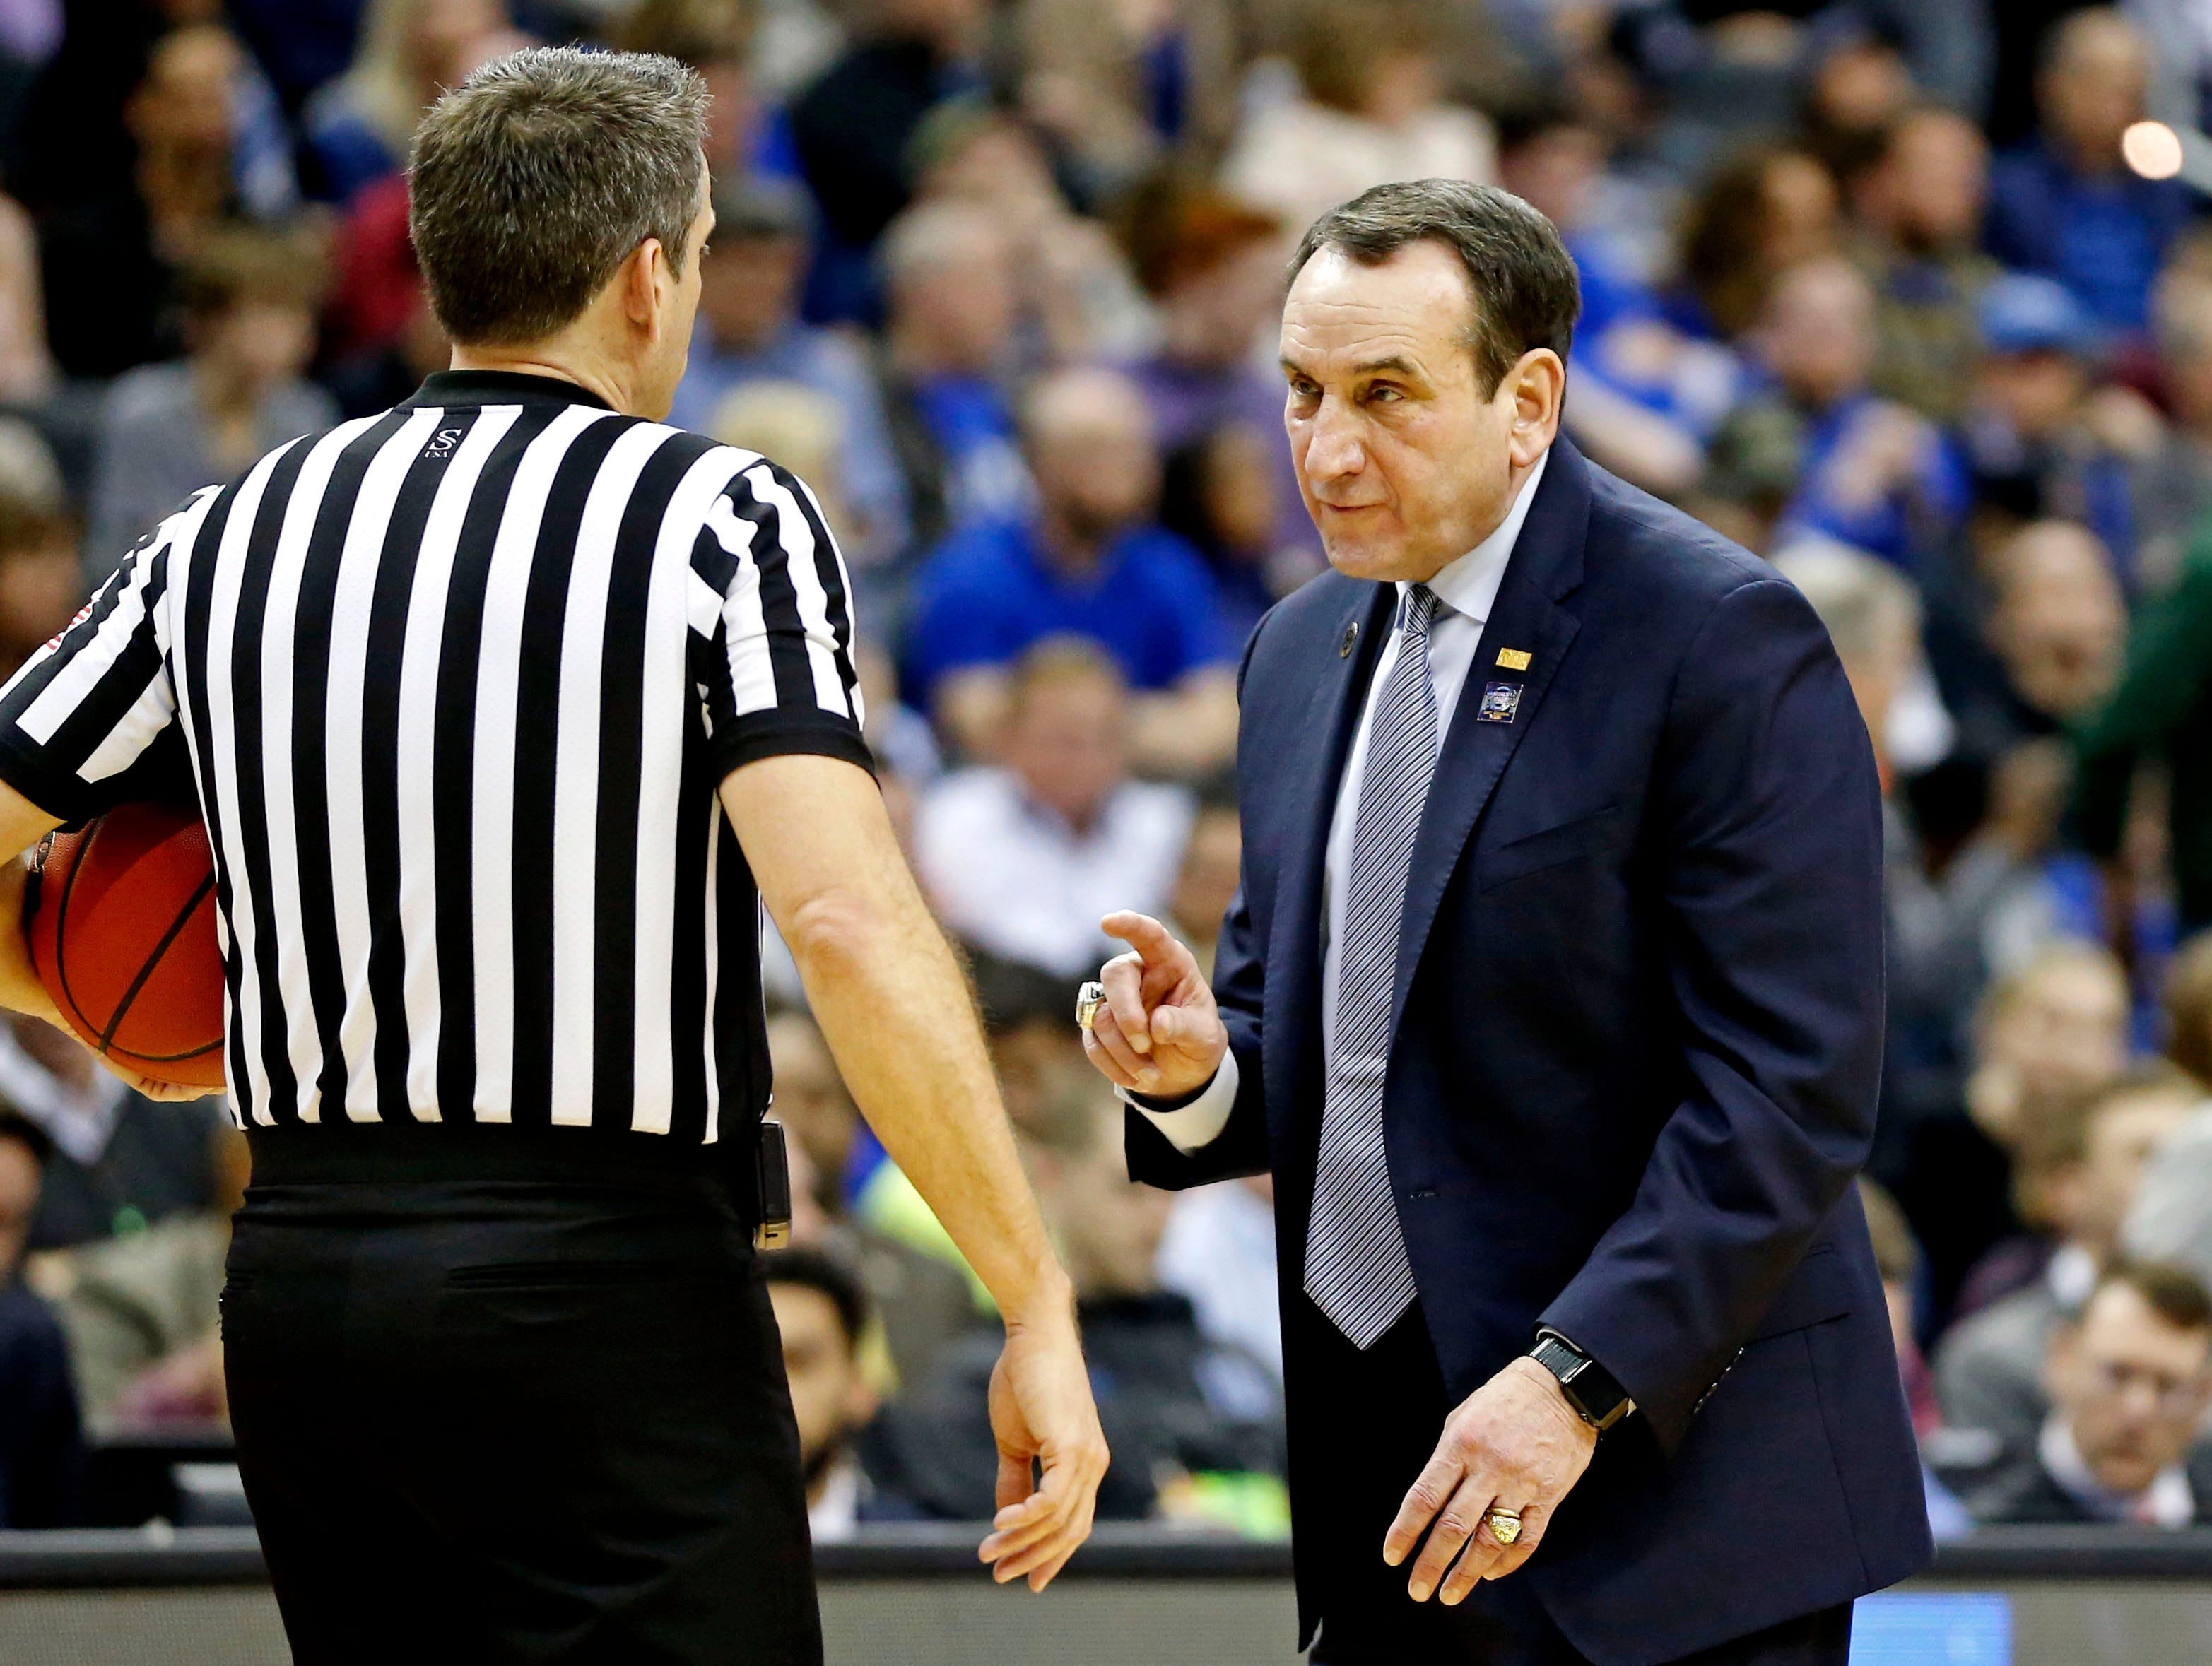 Mar 31, 2019; Washington, DC, USA; Duke Blue Devils head coach Mike Krzyzewski talks with a referee during the second half against the Michigan State Spartans in the championship game of the east regional of the 2019 NCAA Tournament at Capital One Arena. Mandatory Credit: Amber Searls-USA TODAY Sports